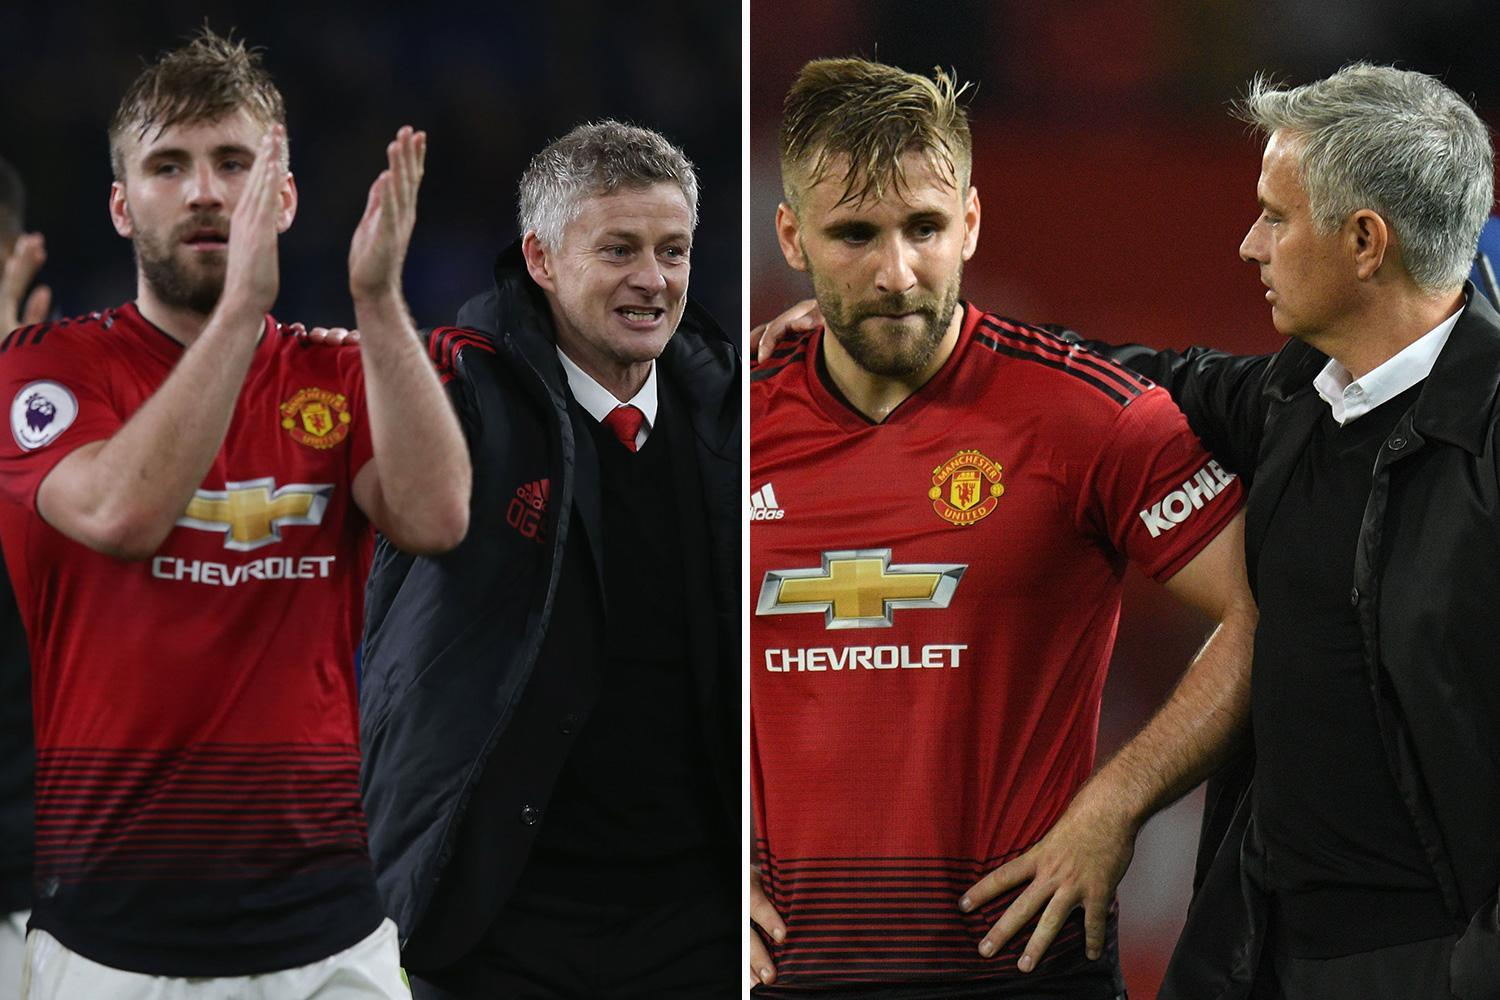 Luke Shaw to stay at Manchester United as he takes £2.8m mansion off market following Mourinho's sacking